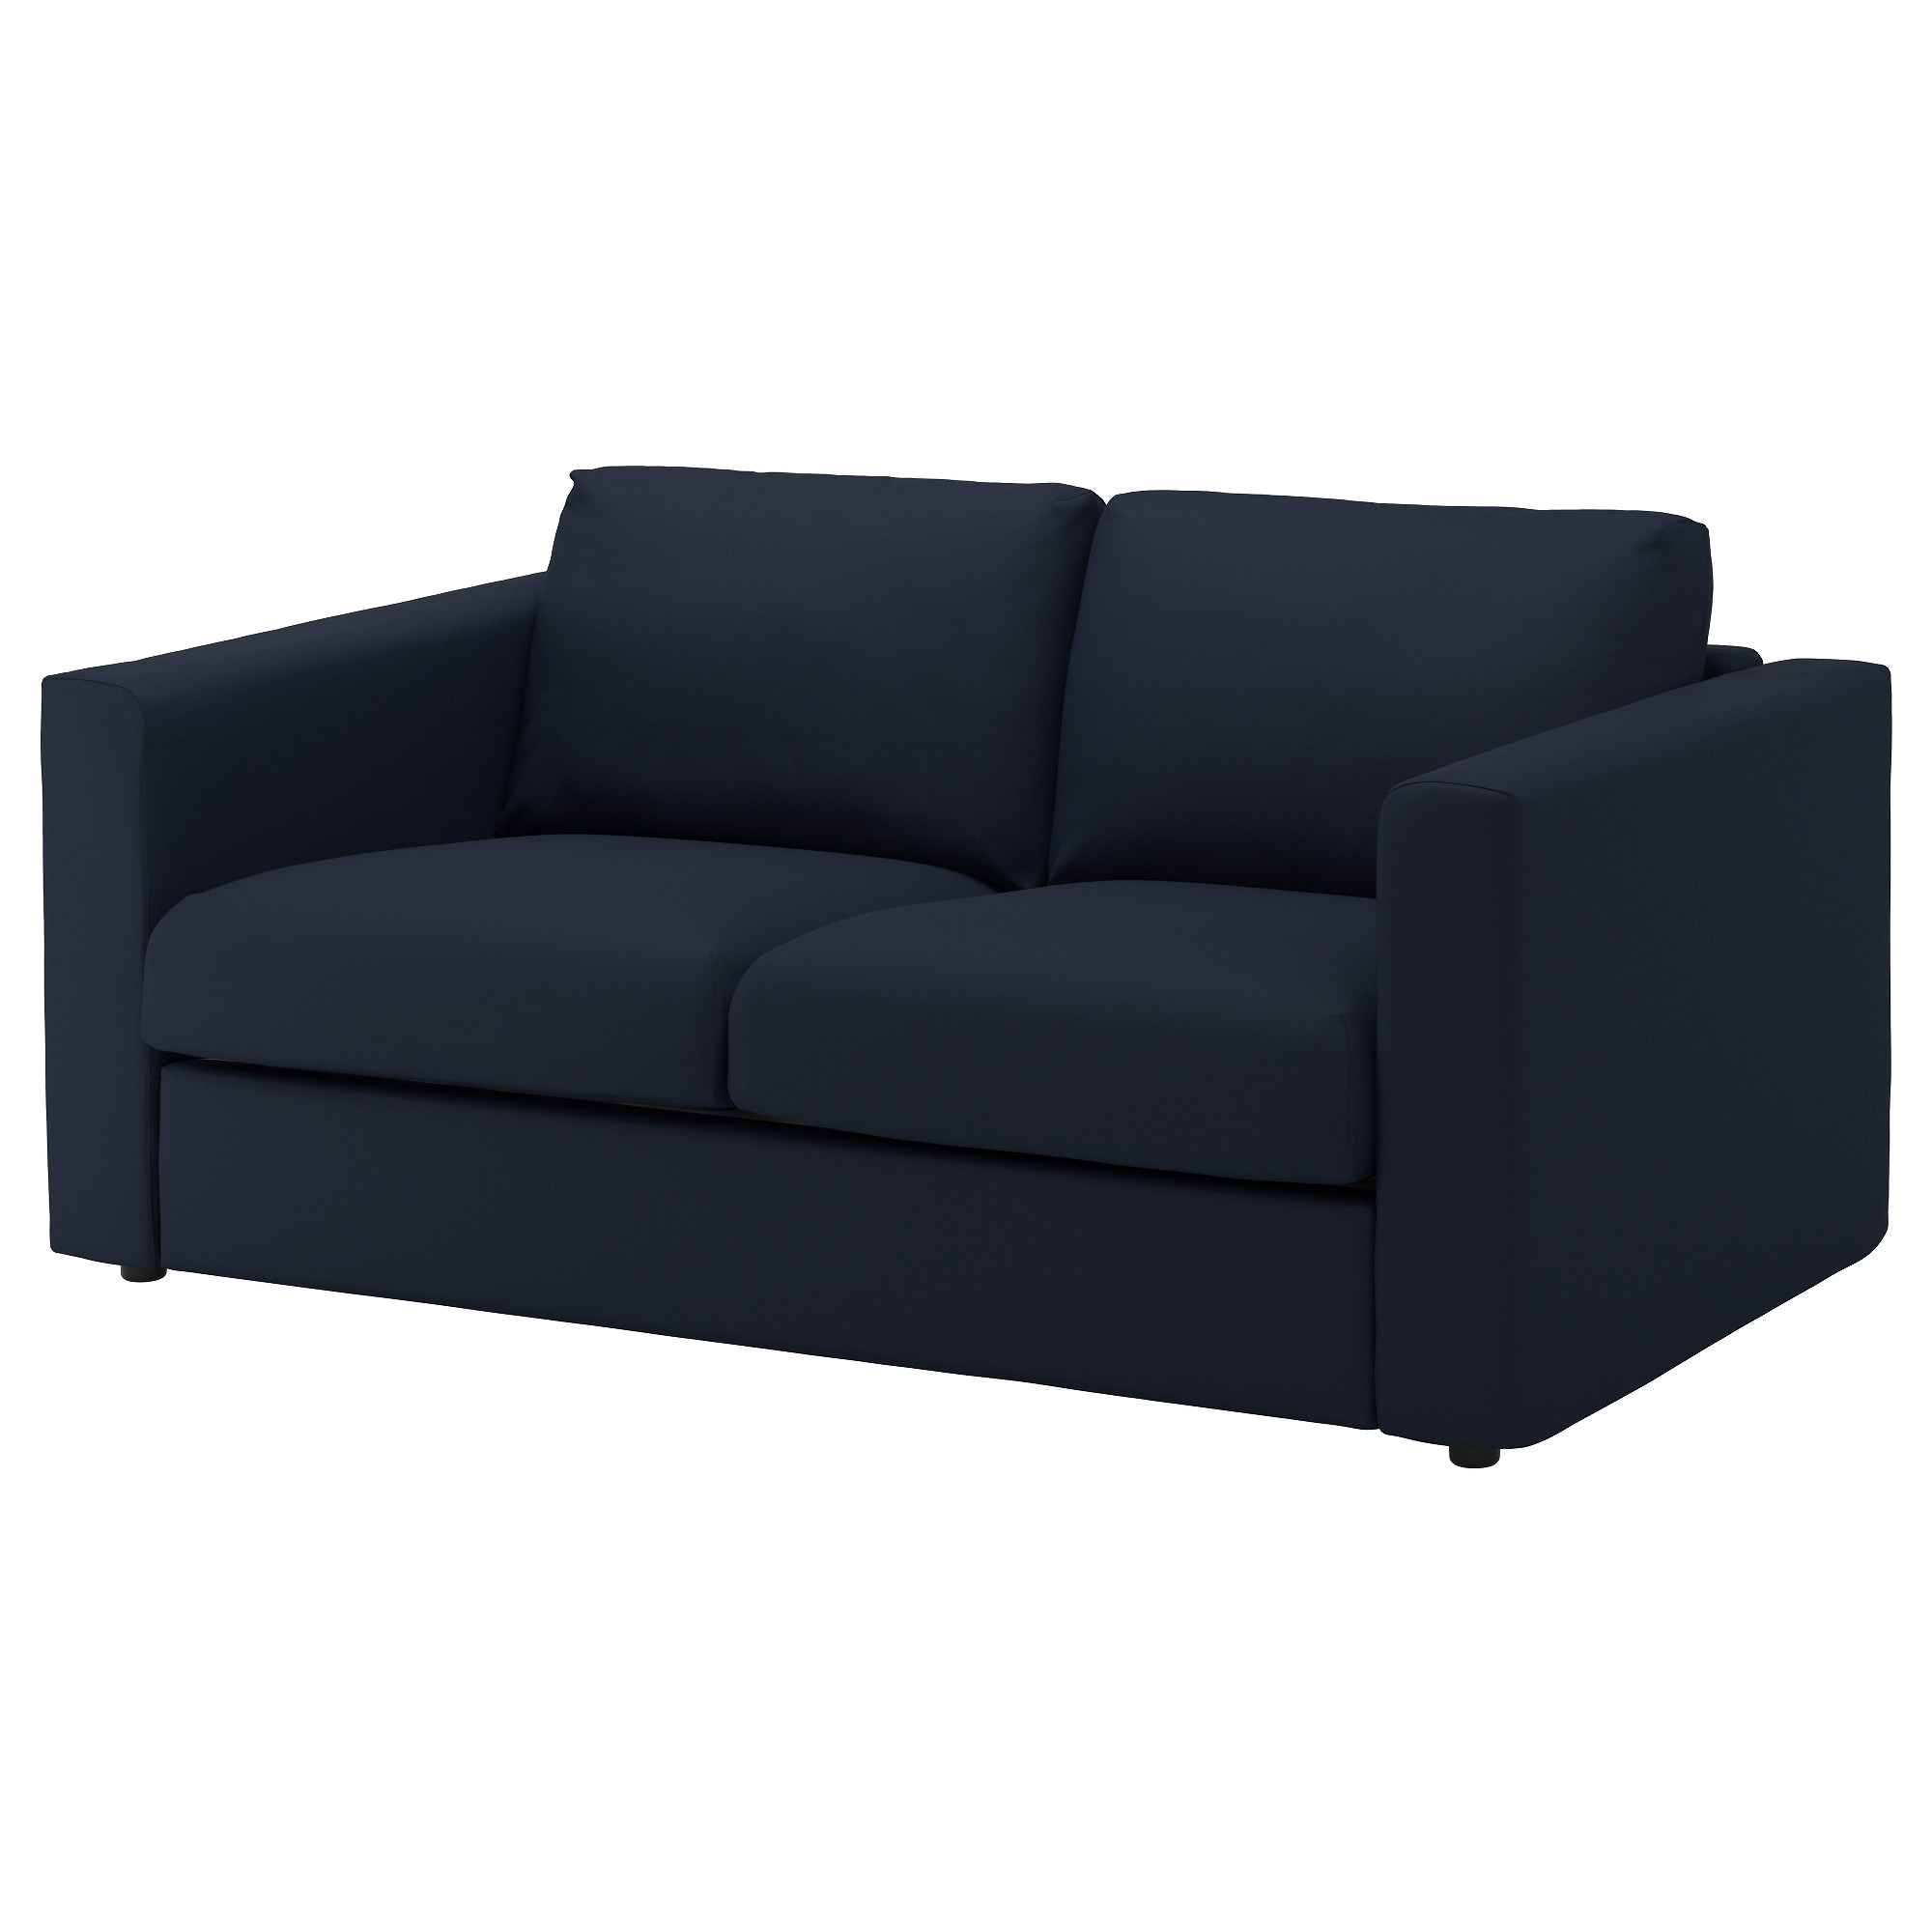 two seater sofa ikea vimle 2-seat sofa ZCGLDPB